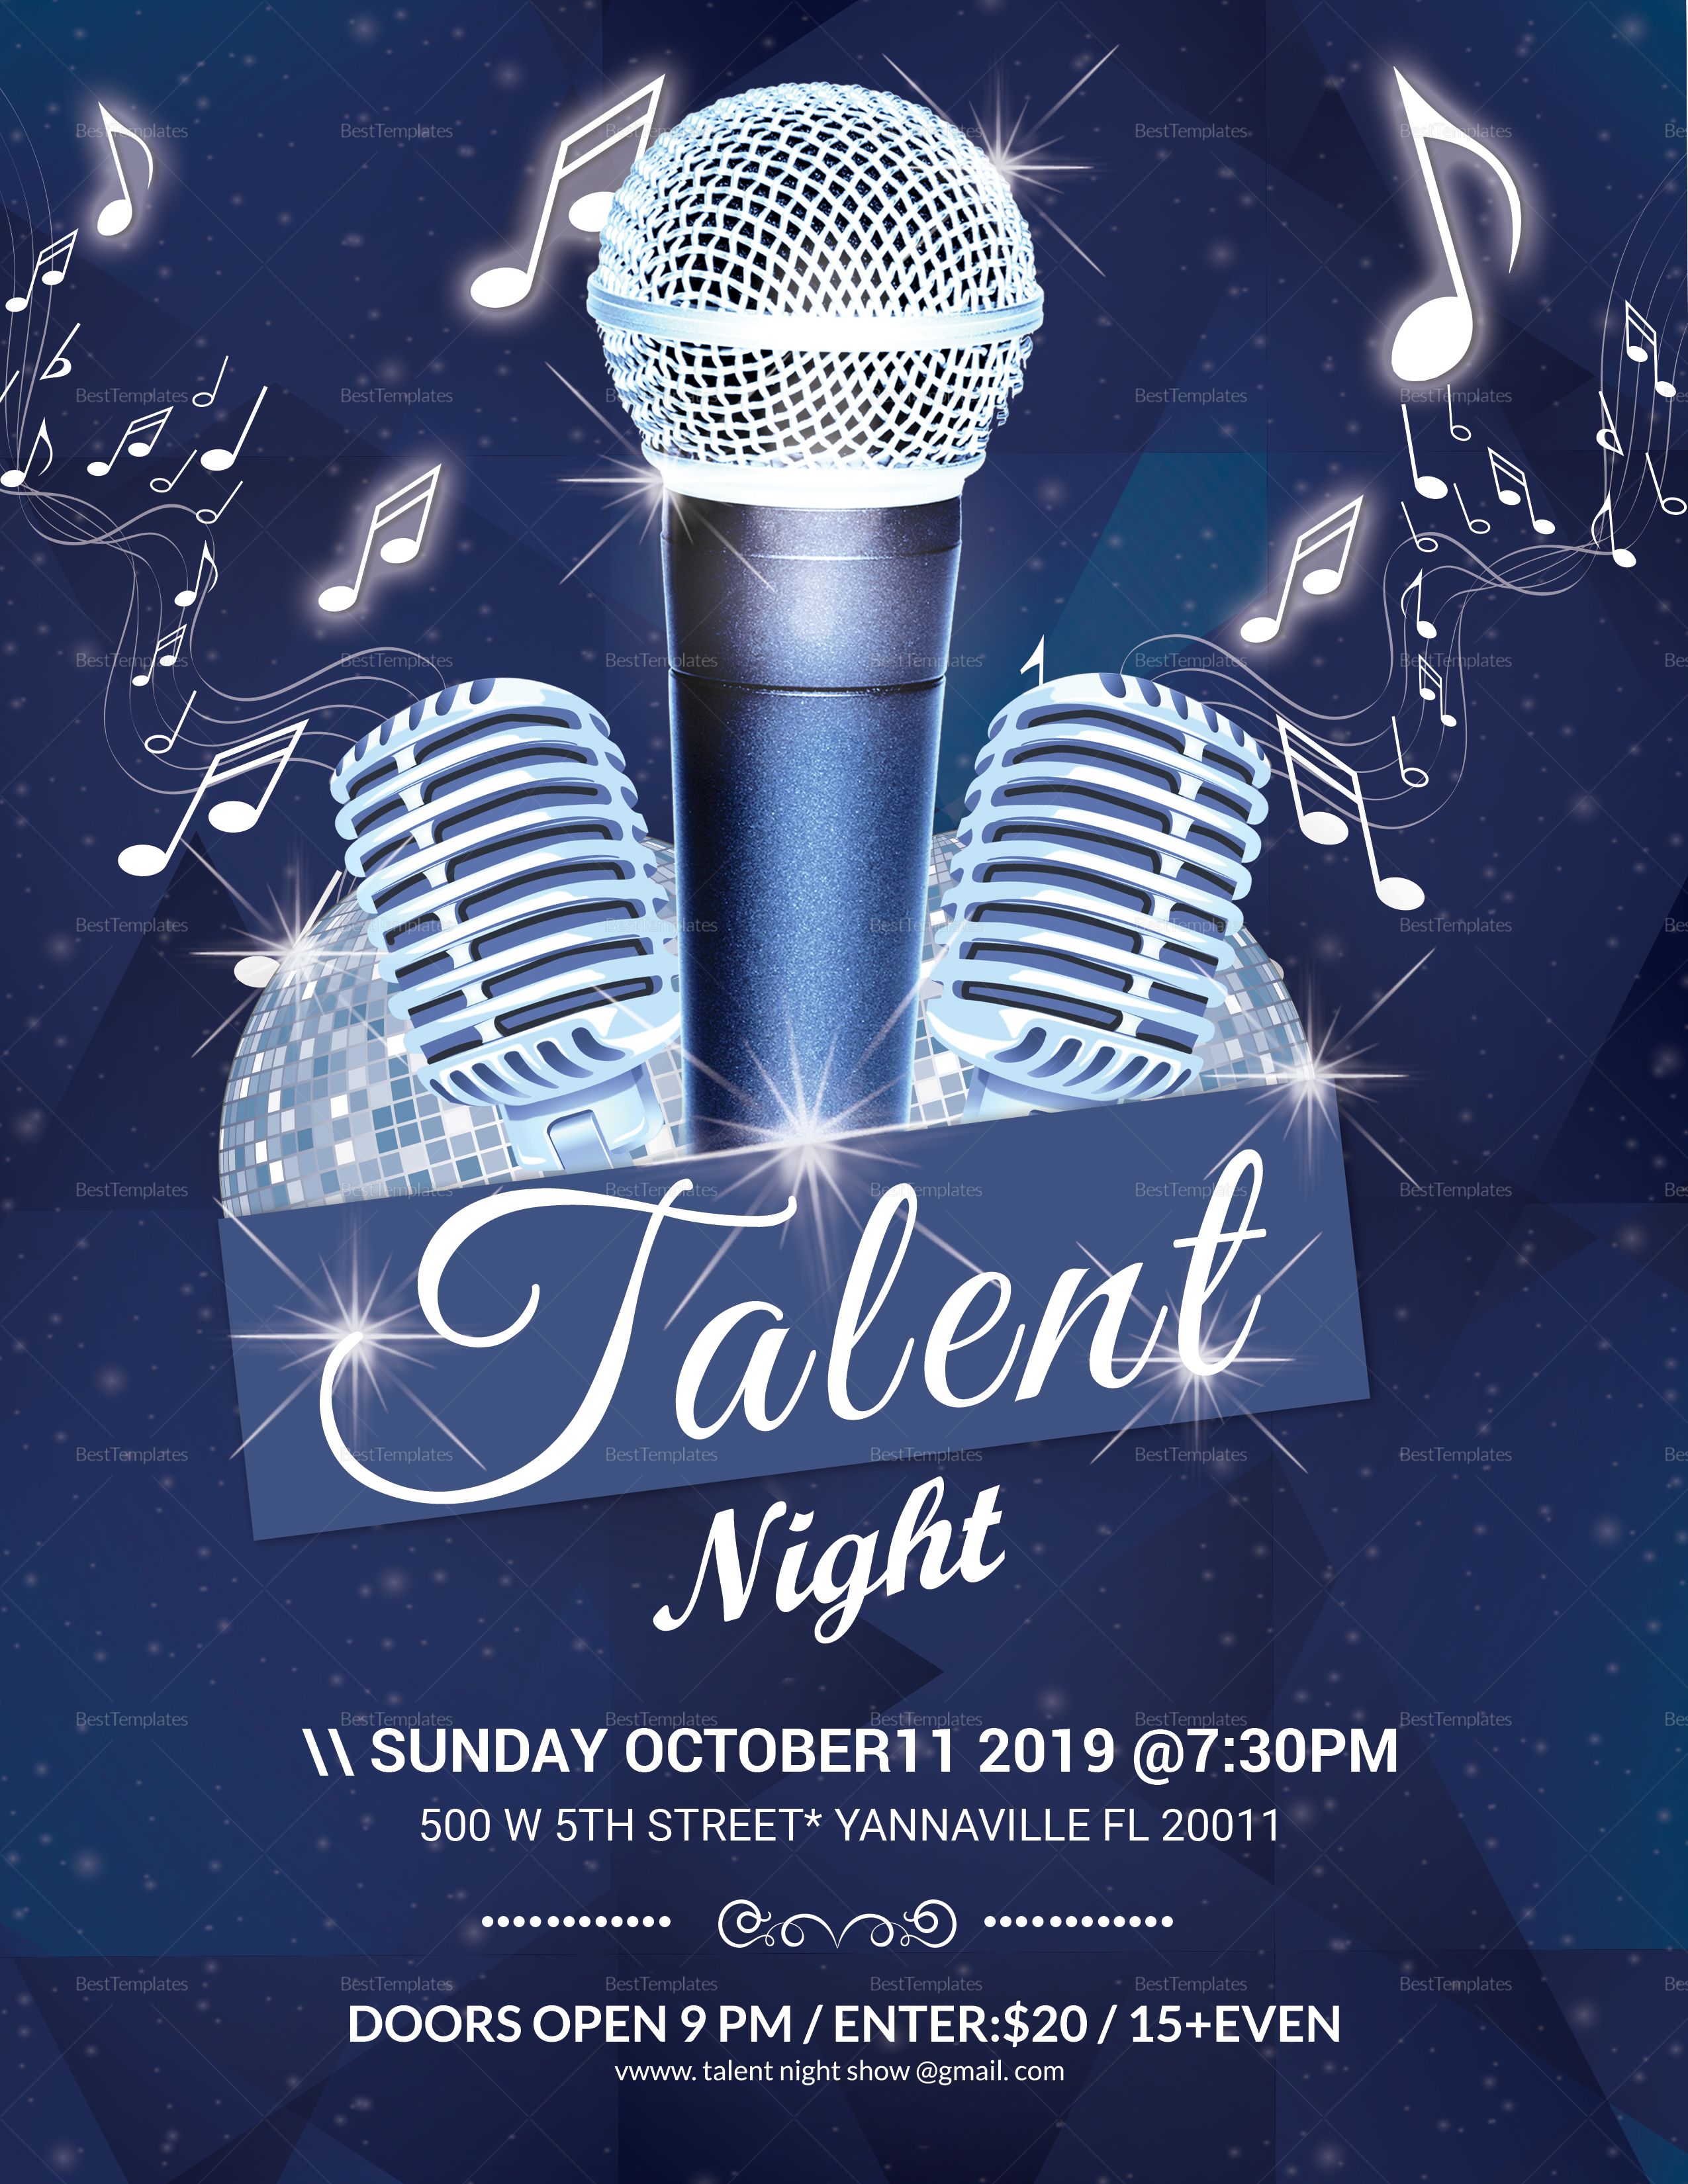 Talent Night Flyer Design Template In Word Psd Publisher